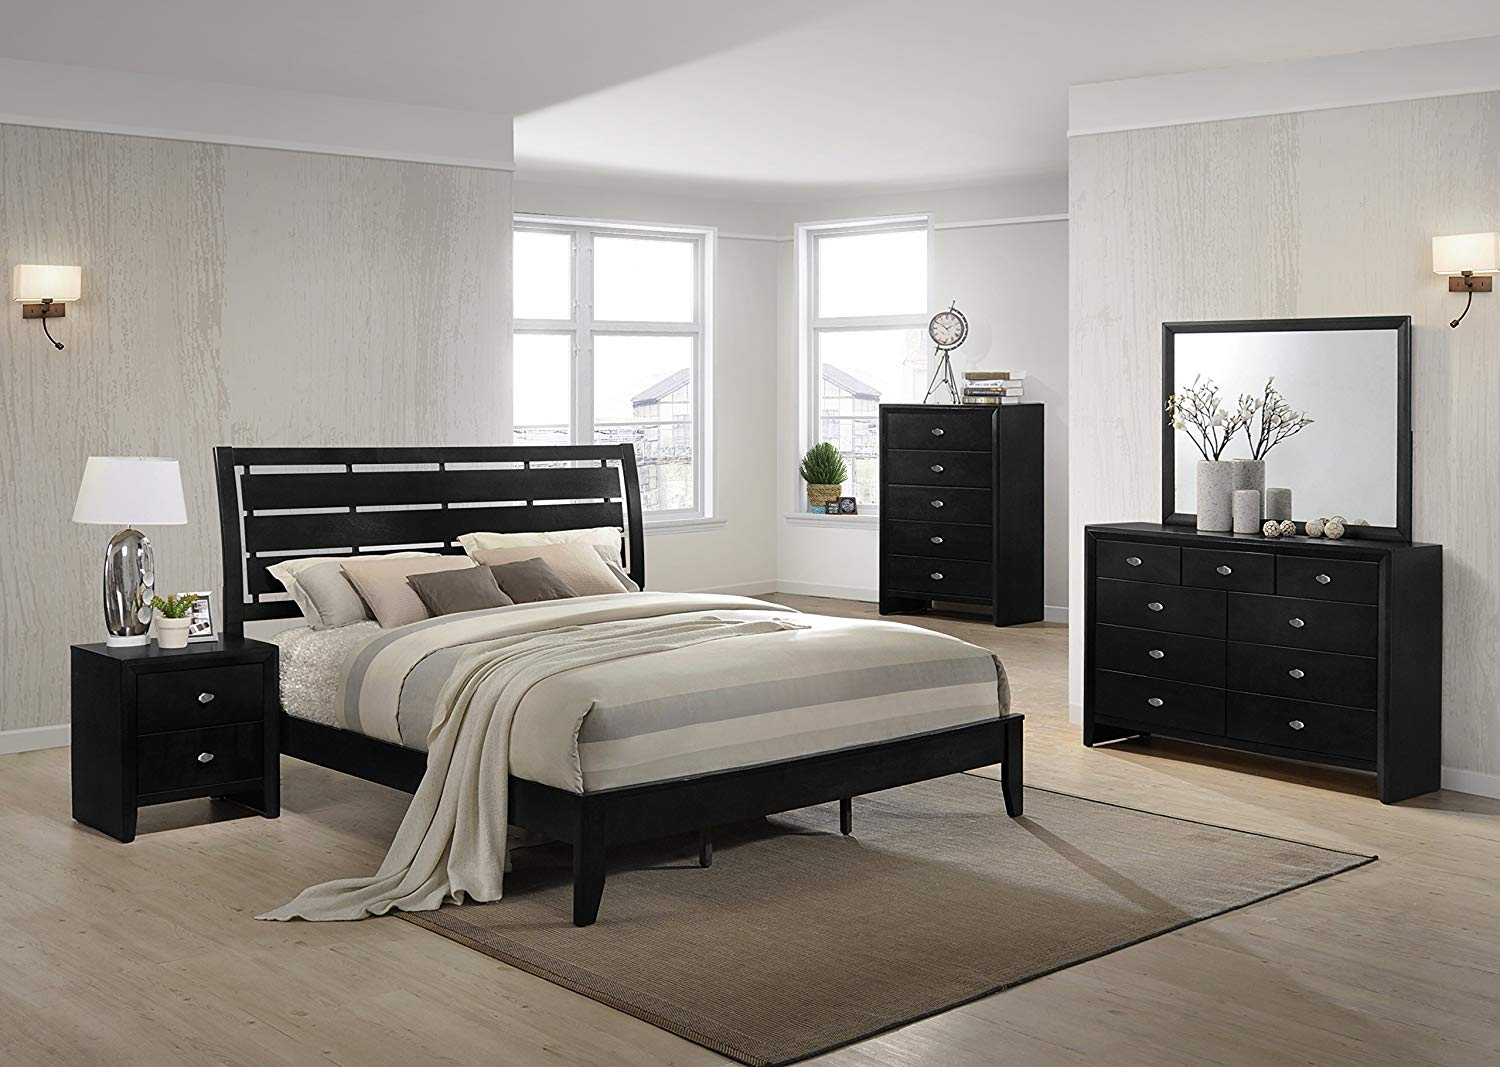 9 Drawers Dresser in bedroom looks